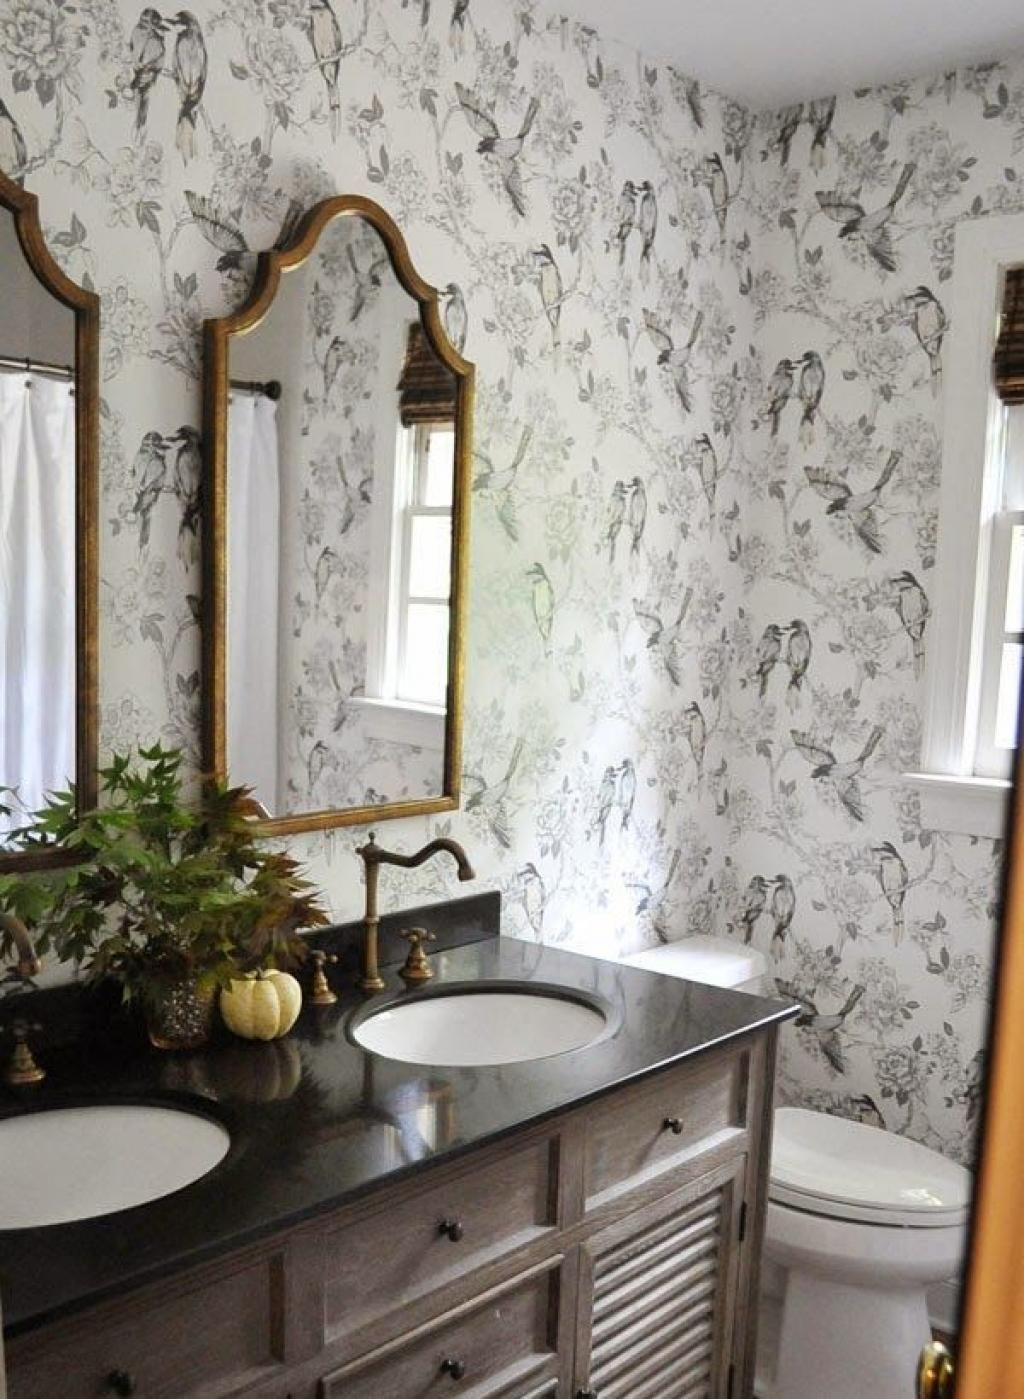 40 Stylish Bathroom Wallpaper Ideas Inspirations | Bird bathroom ...